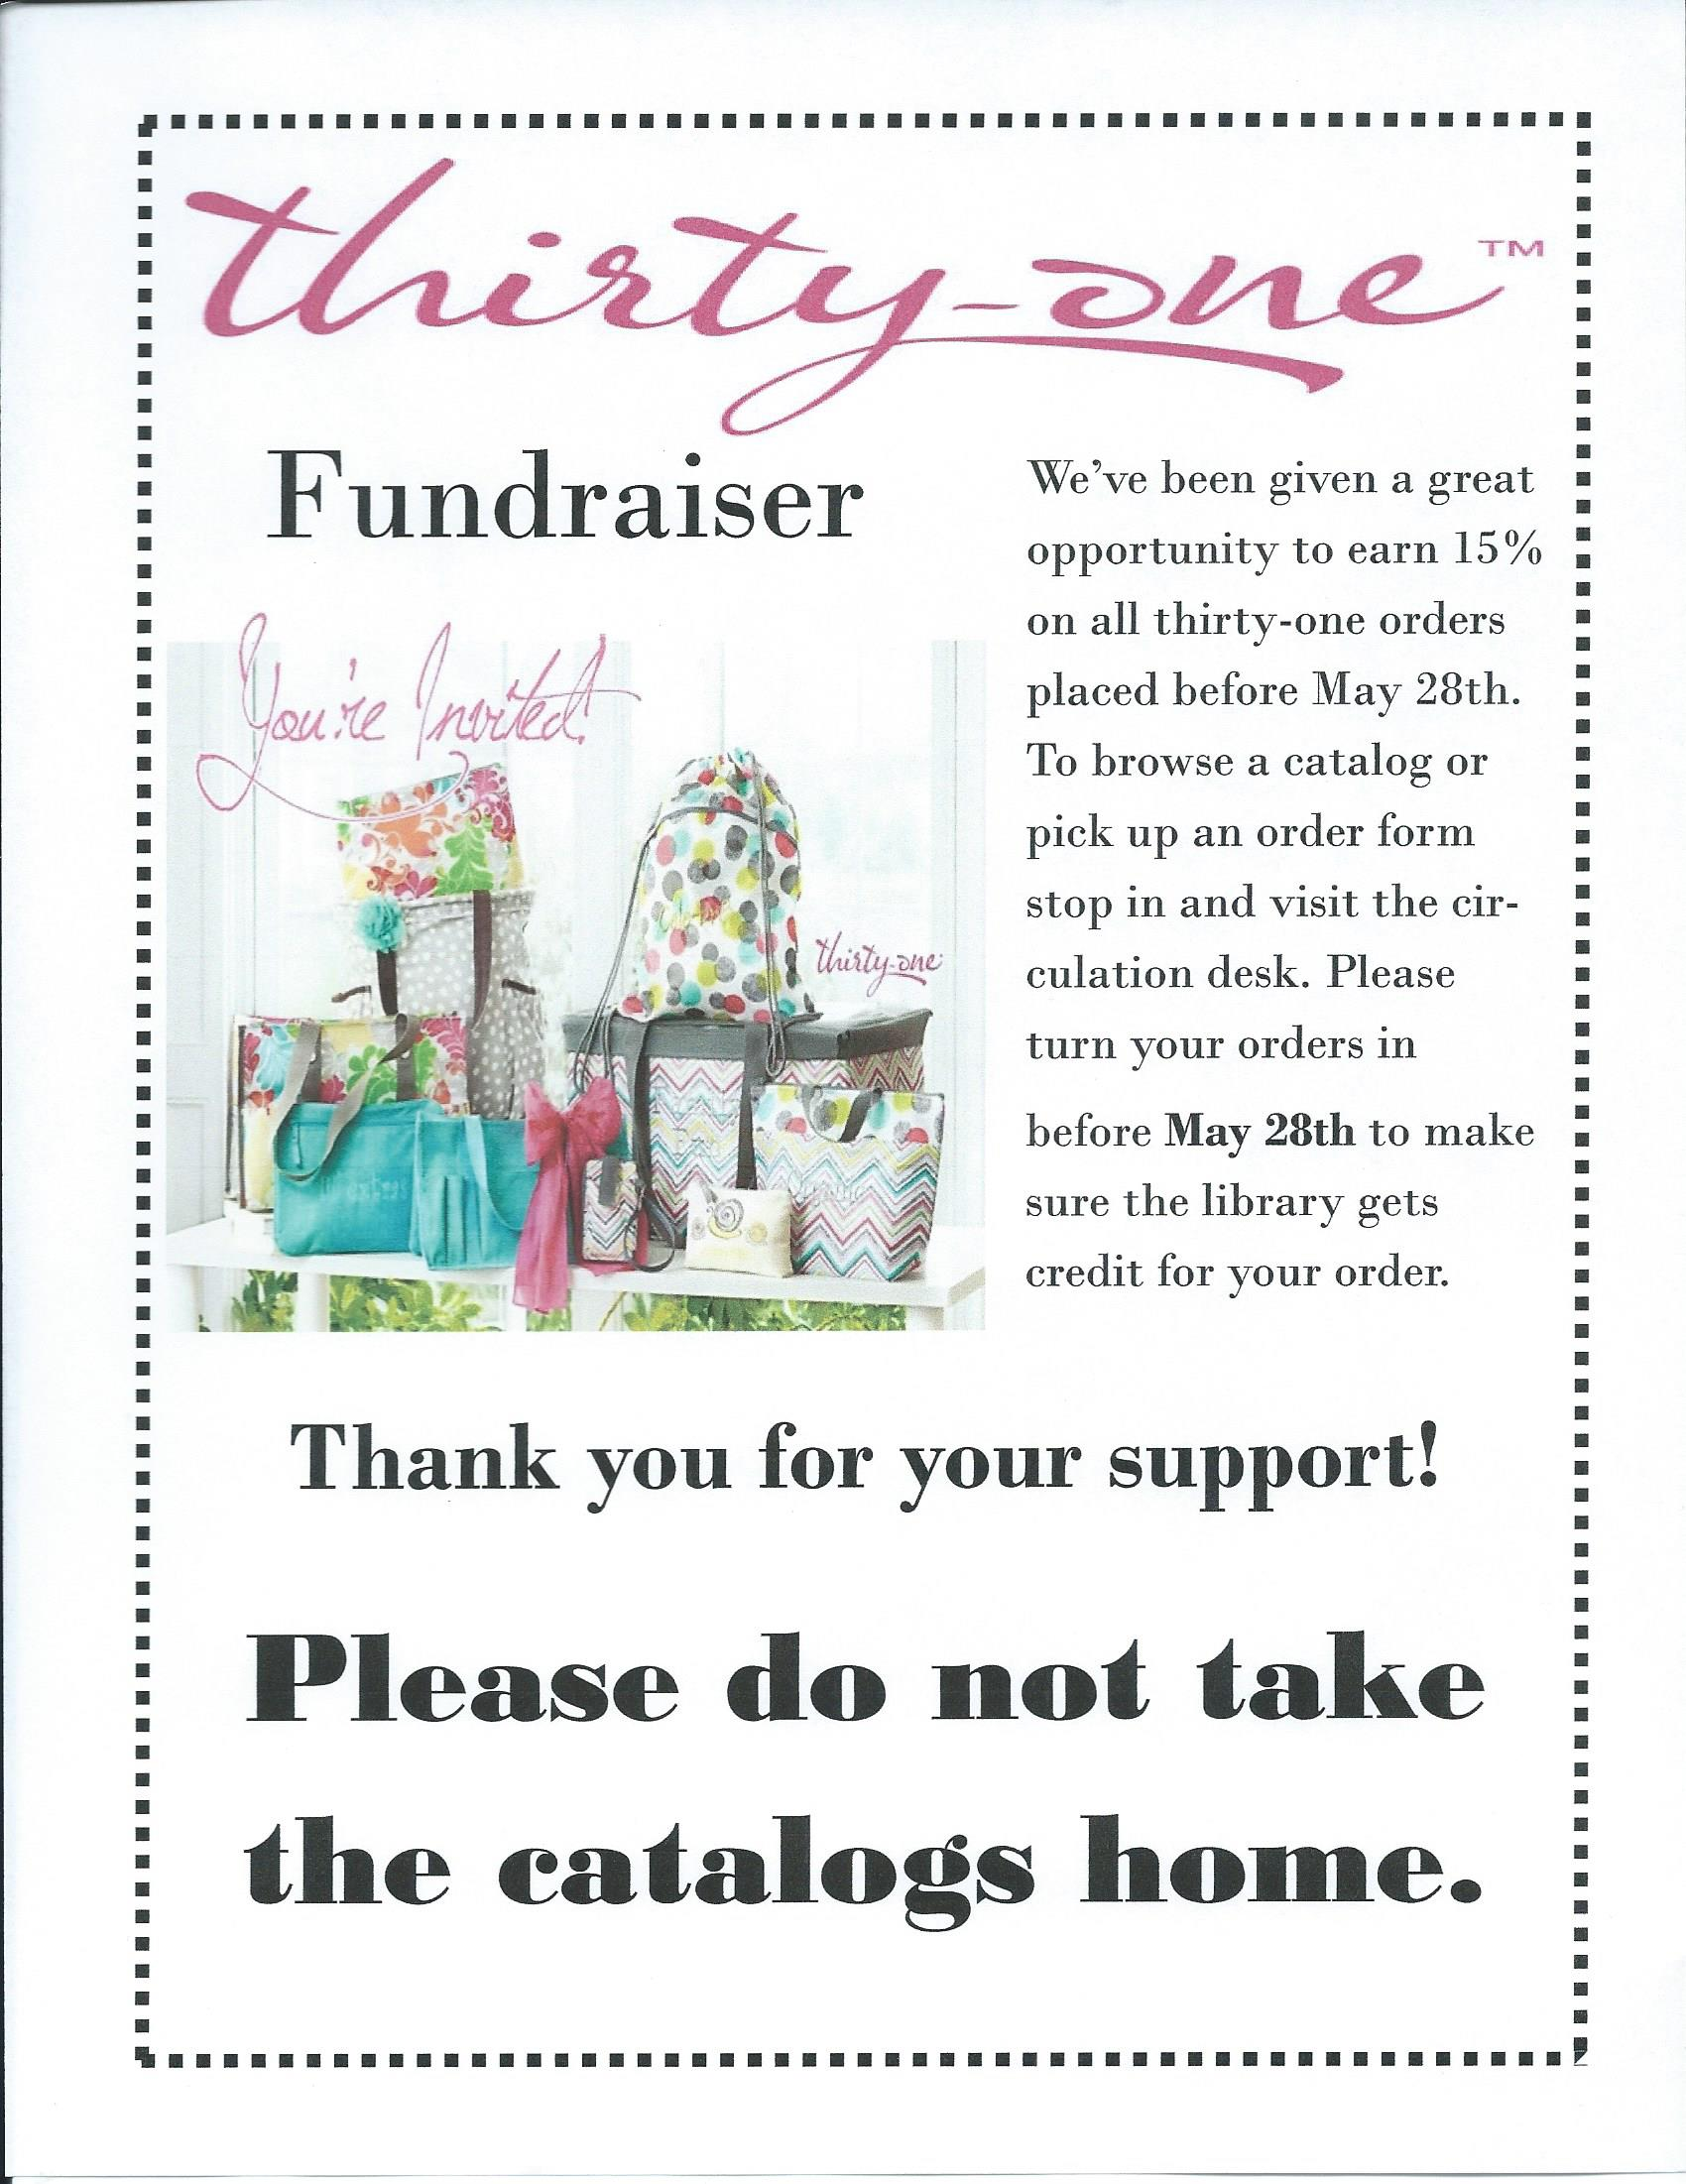 Thirty-one Fundraiser | Evans City Public Library